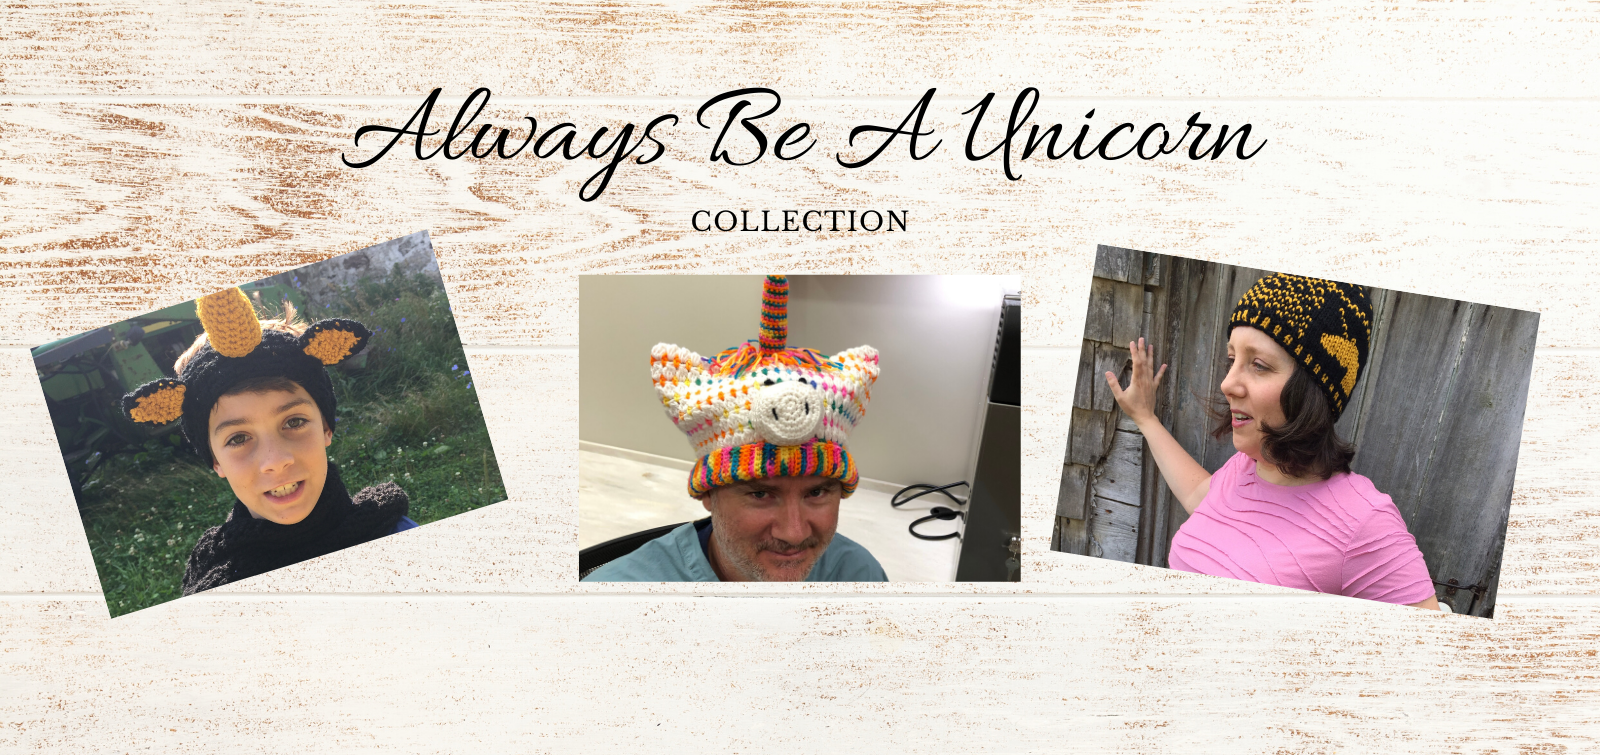 2019 11 always be a unicorn collection patterns and hats - website slider 1600 x 755